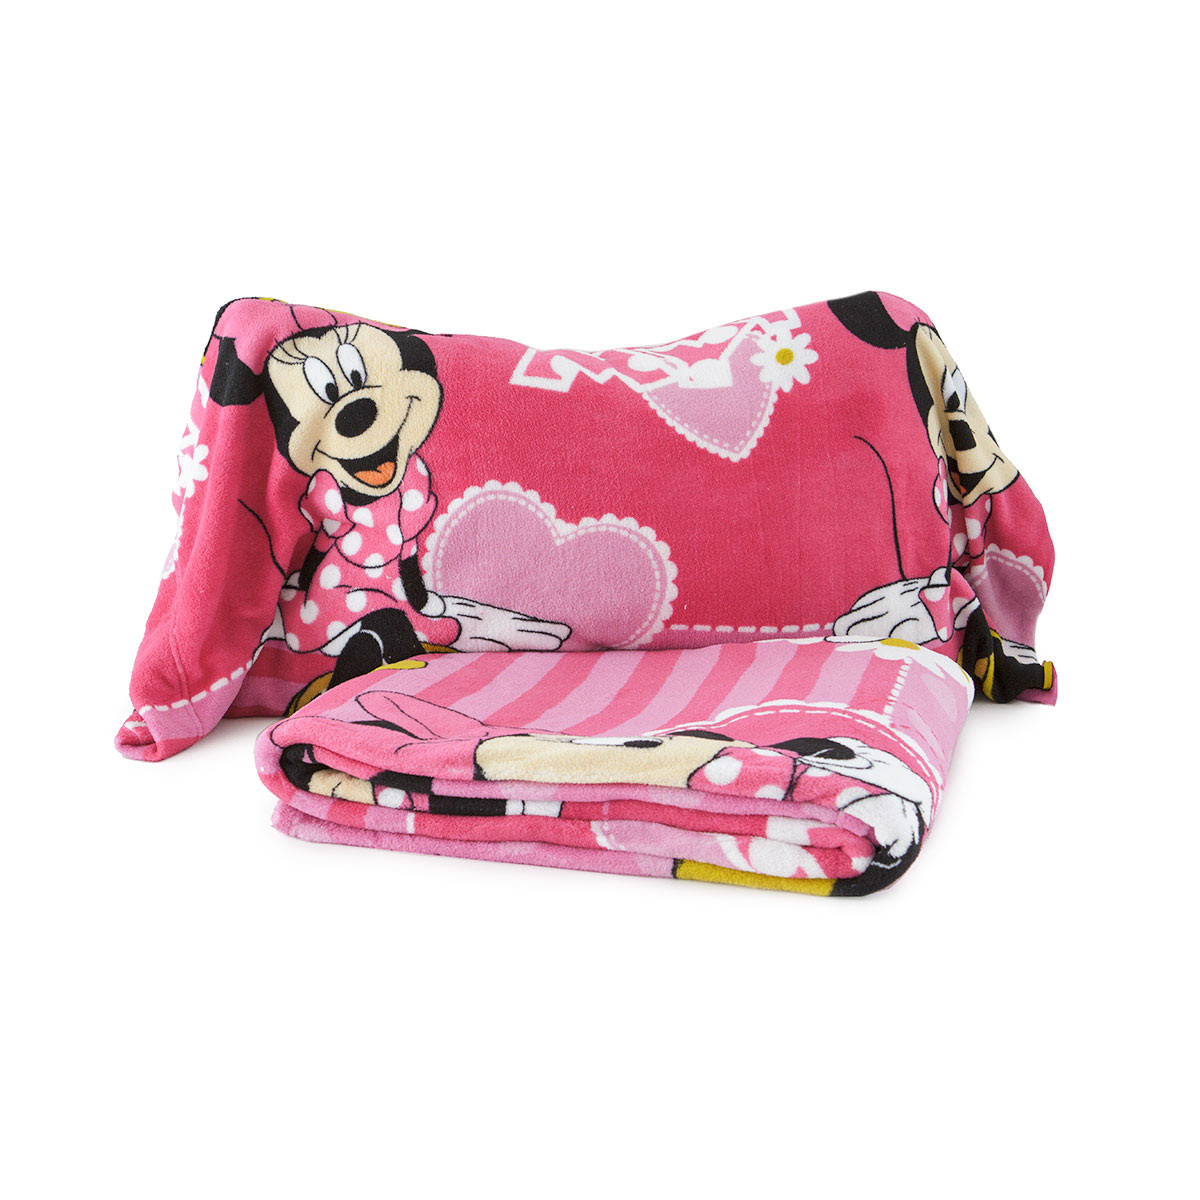 Lenzuola in pile minnie disney completo per letto singolo - Lenzuola letto singolo disney ...